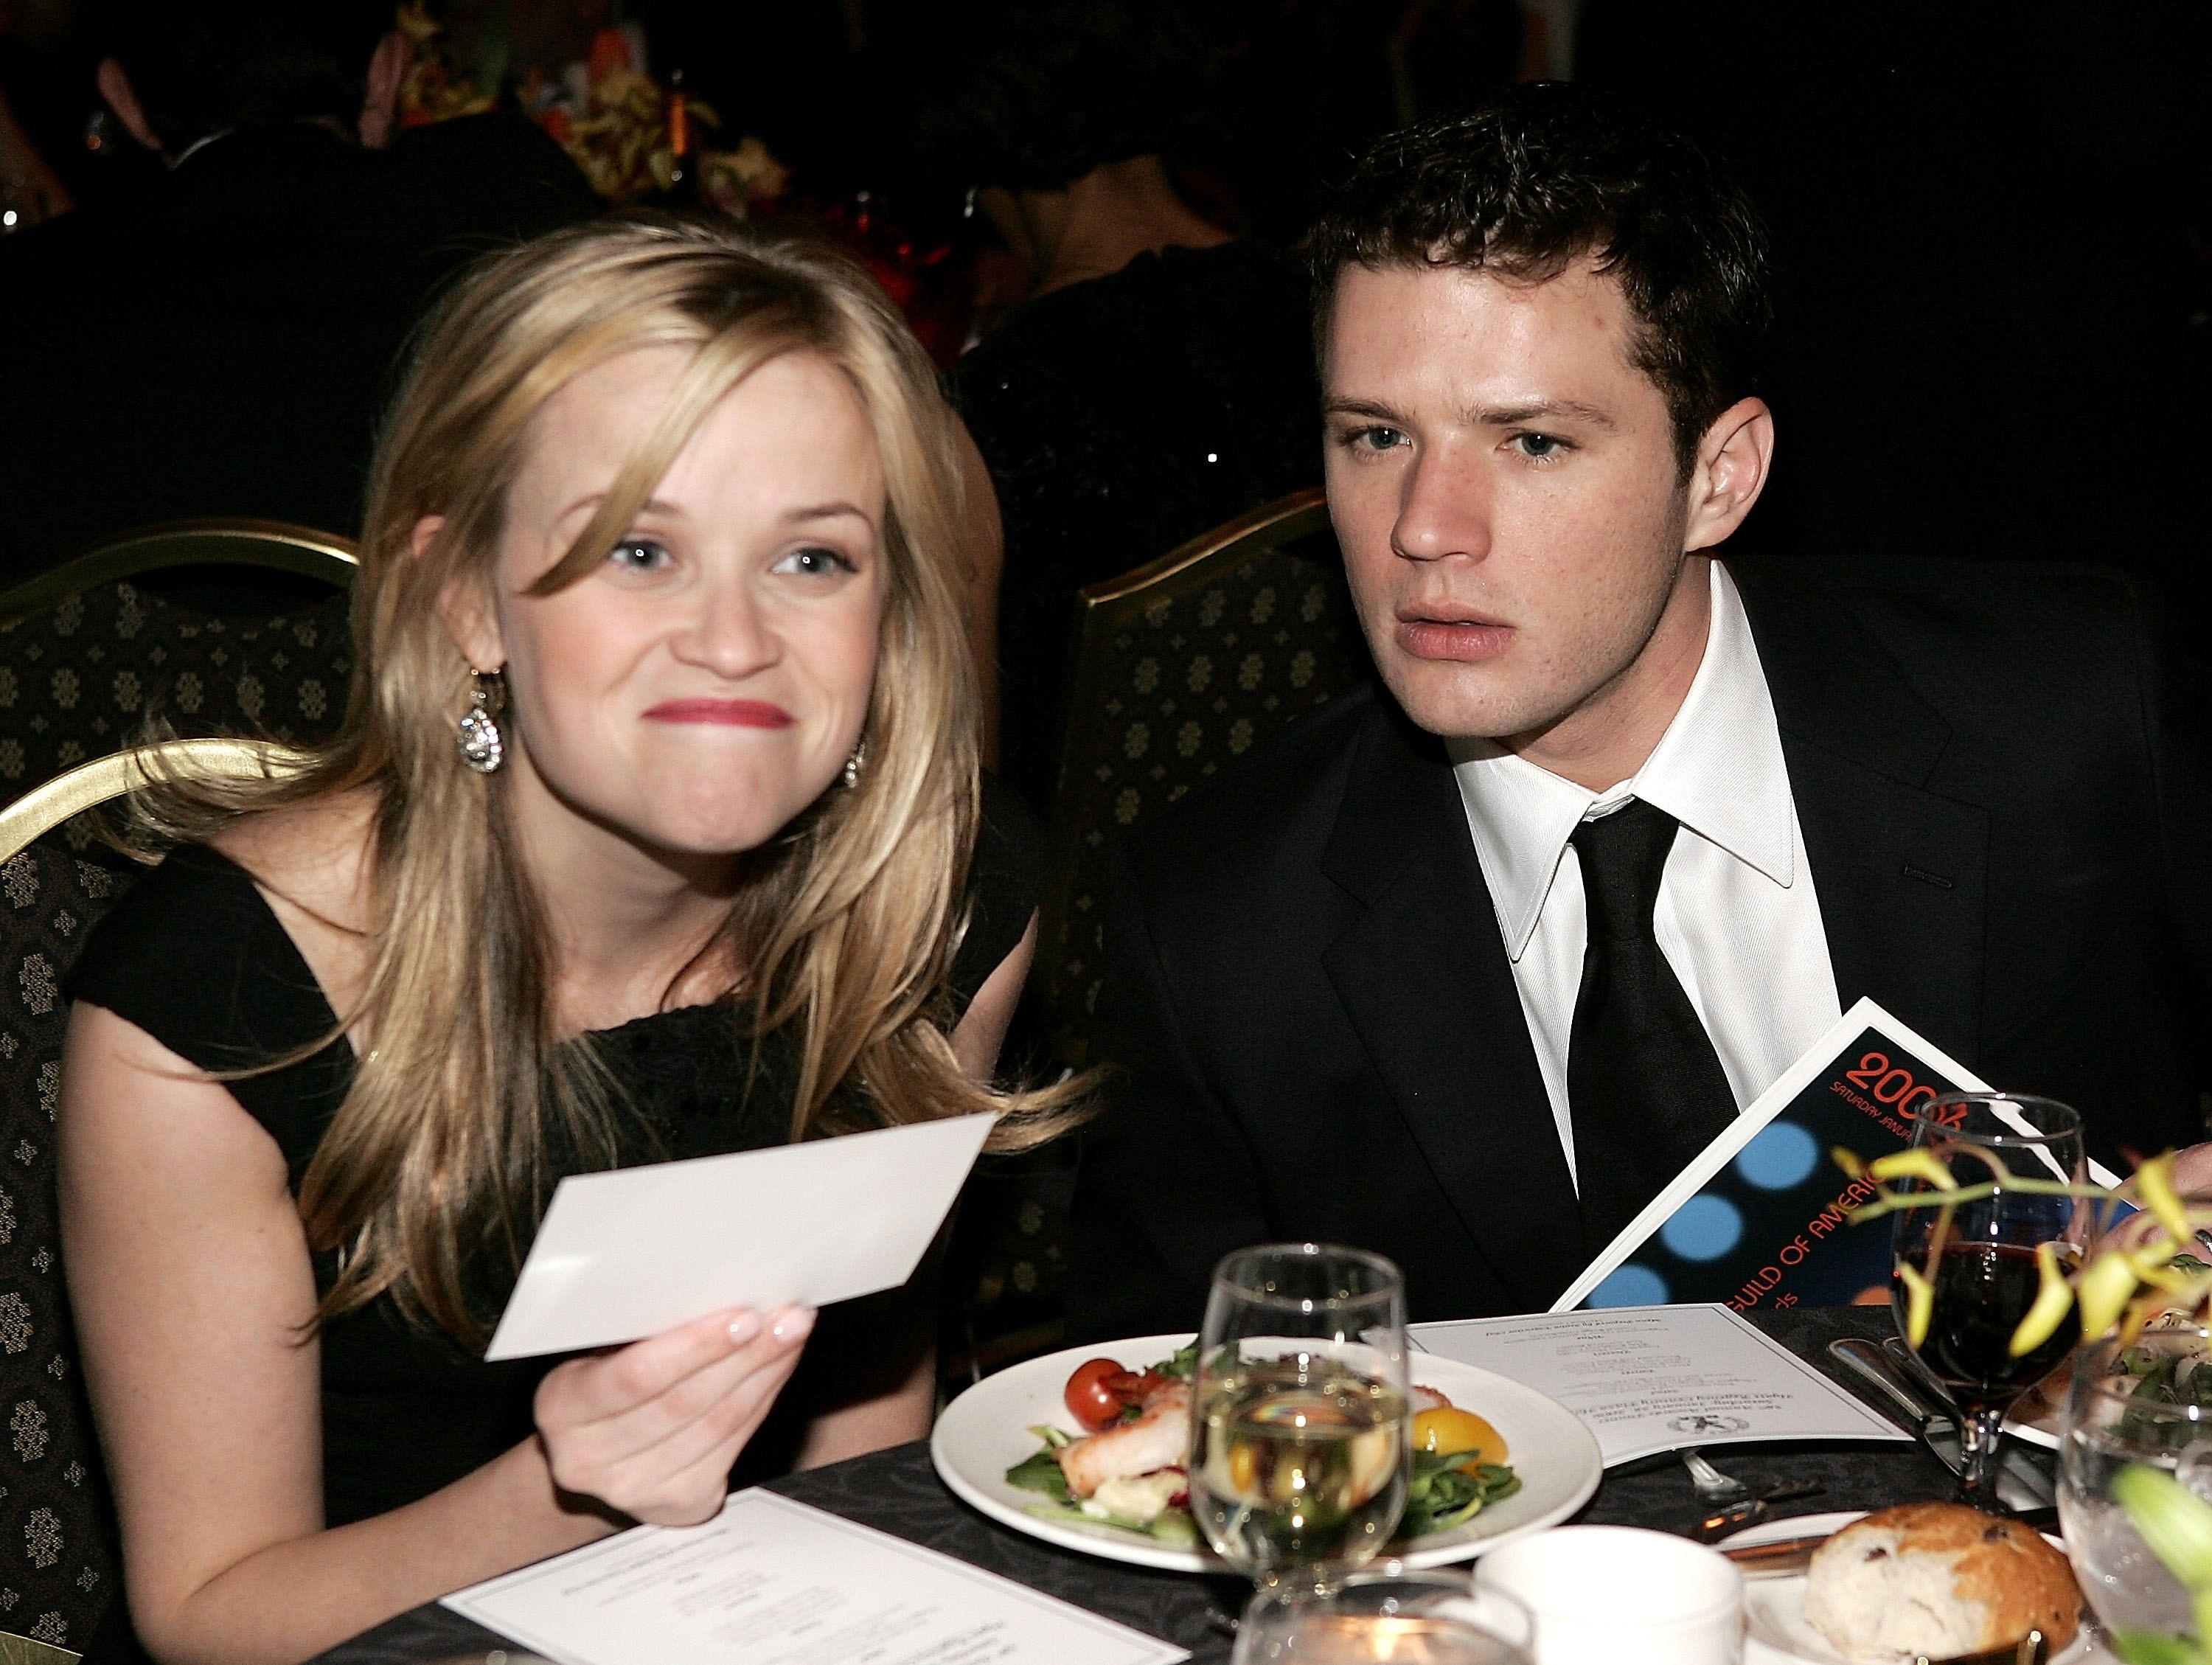 Reese Witherspoon and Ryan Phillippe talk during the 58th Annual Directors Guild Of America Awards. | Source: Getty Images